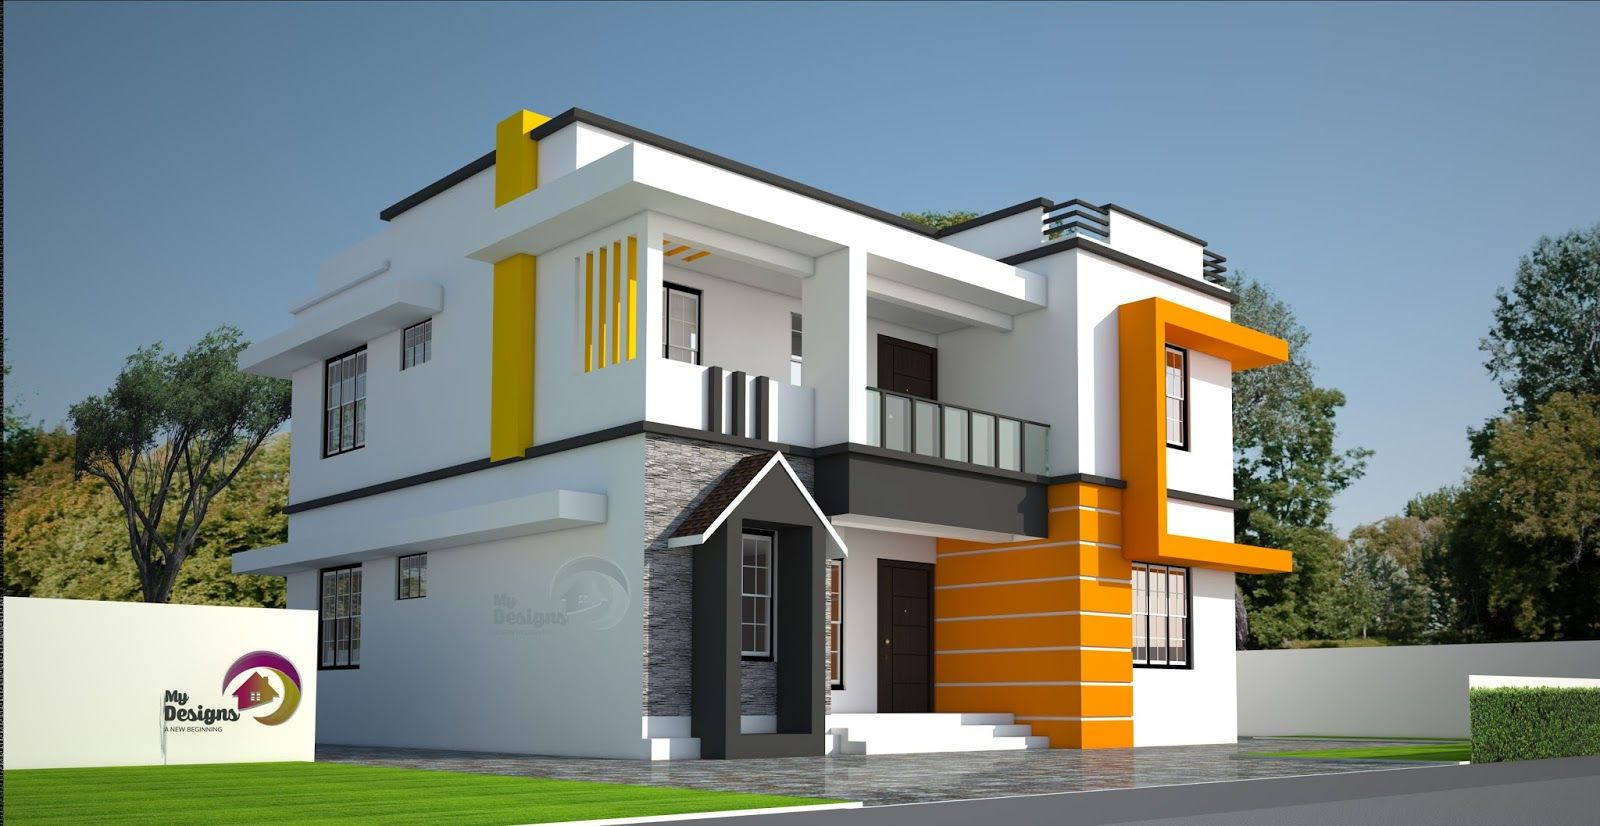 Presenting a modern contemporary style home design of 1867 sqft which can be finished in less than 32 lakhs building designer rij